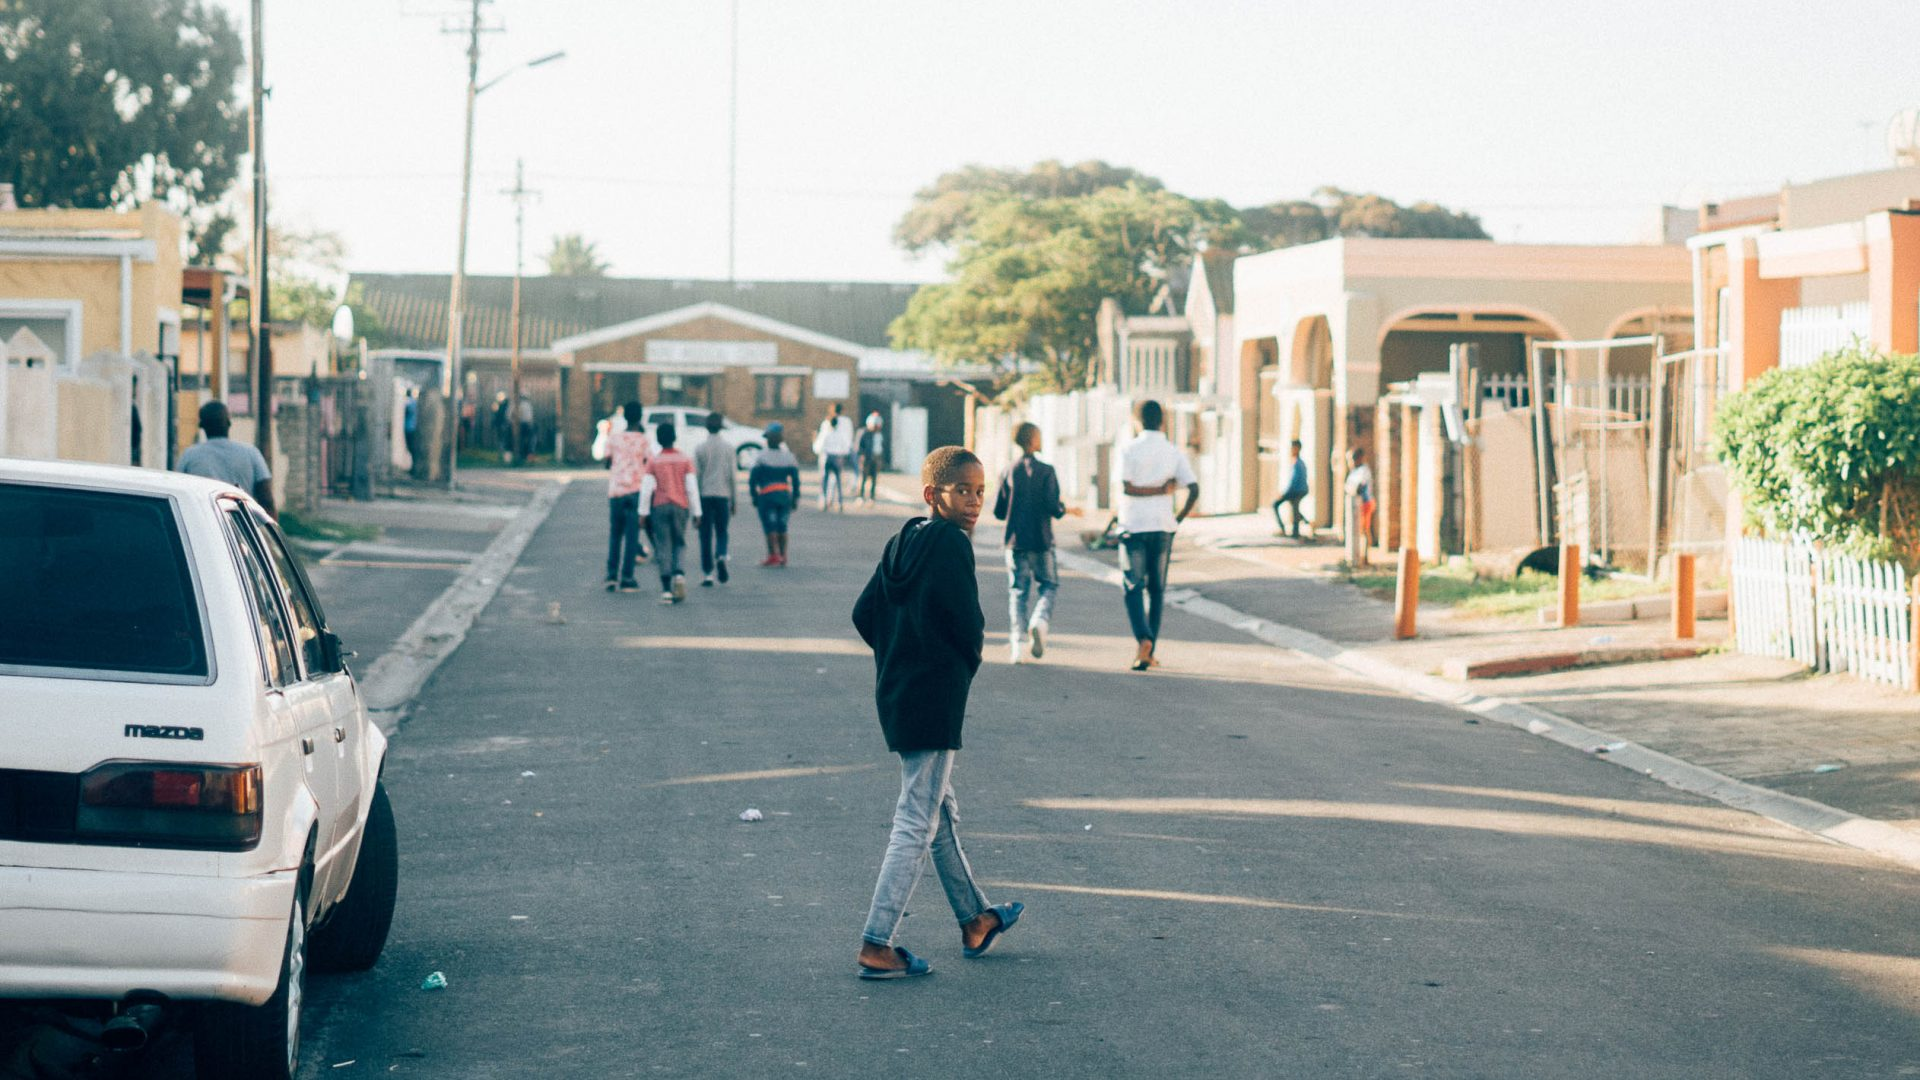 Kids make their way down one of the streets of Langa, Cape Town.